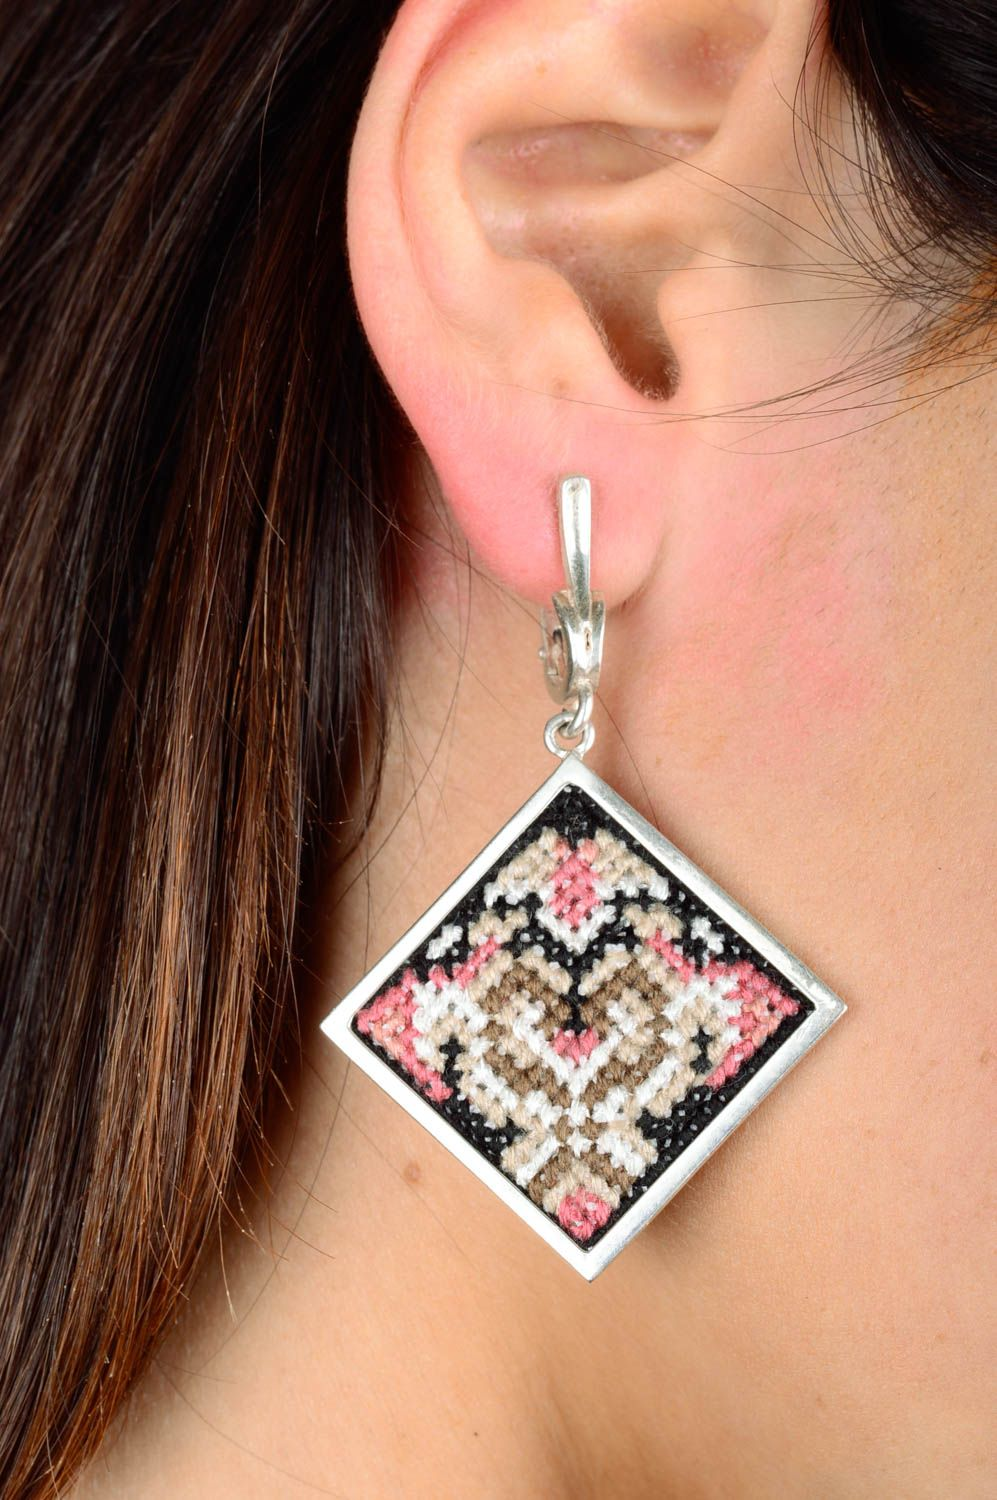 Stylish earrings handmade earrings handcrafted jewelry embroidery designs photo 2